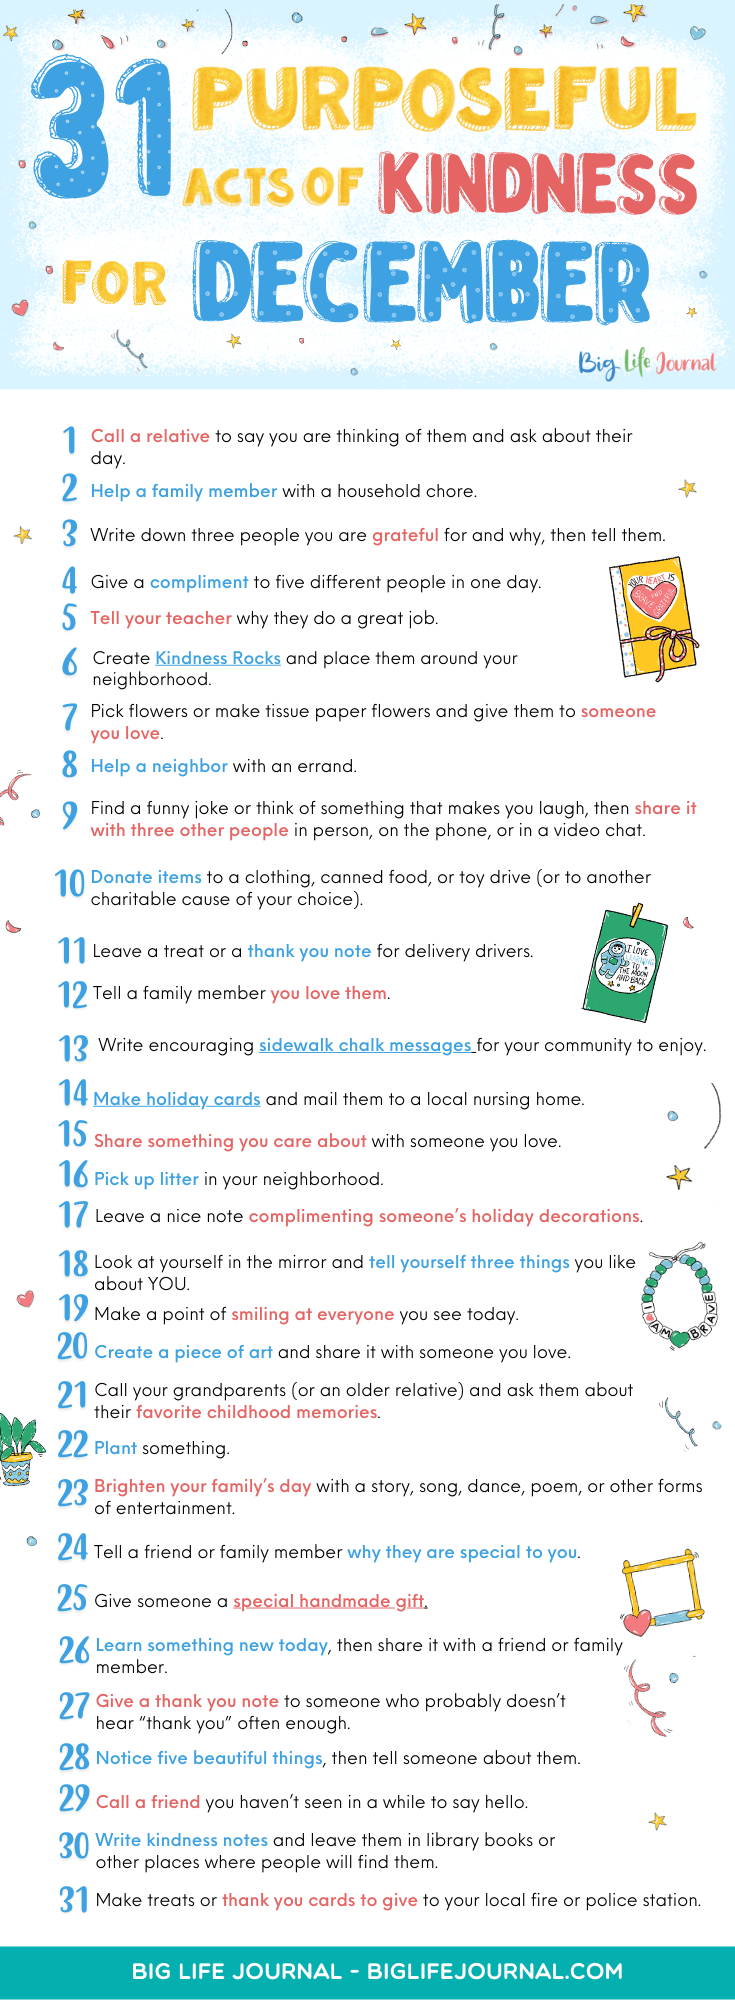 31 Purposeful Acts of Kindness for December